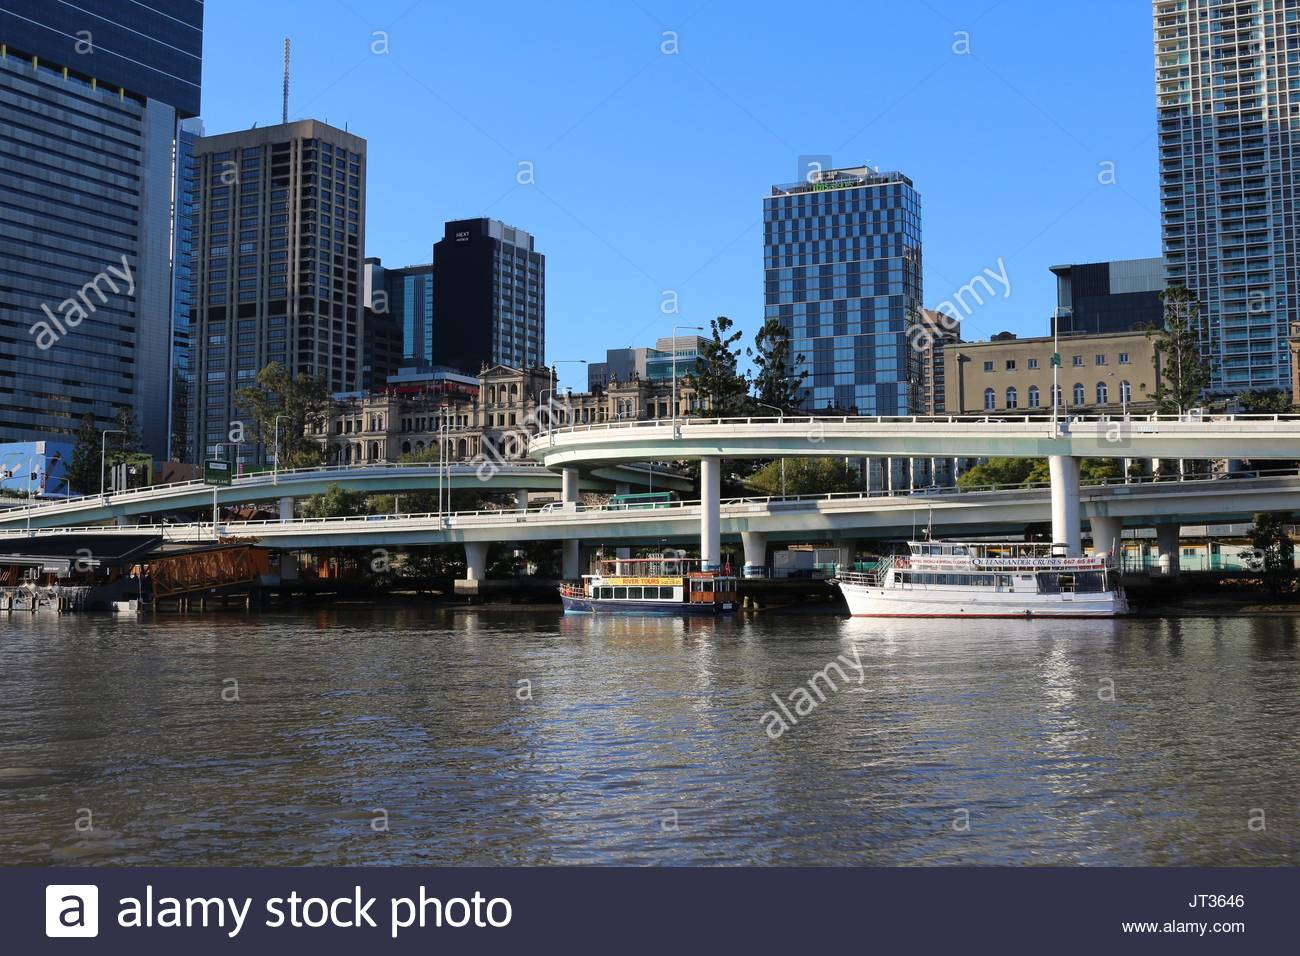 View on the city of Brisbane and the Highway from the river, Queensland, Australia - Stock Image